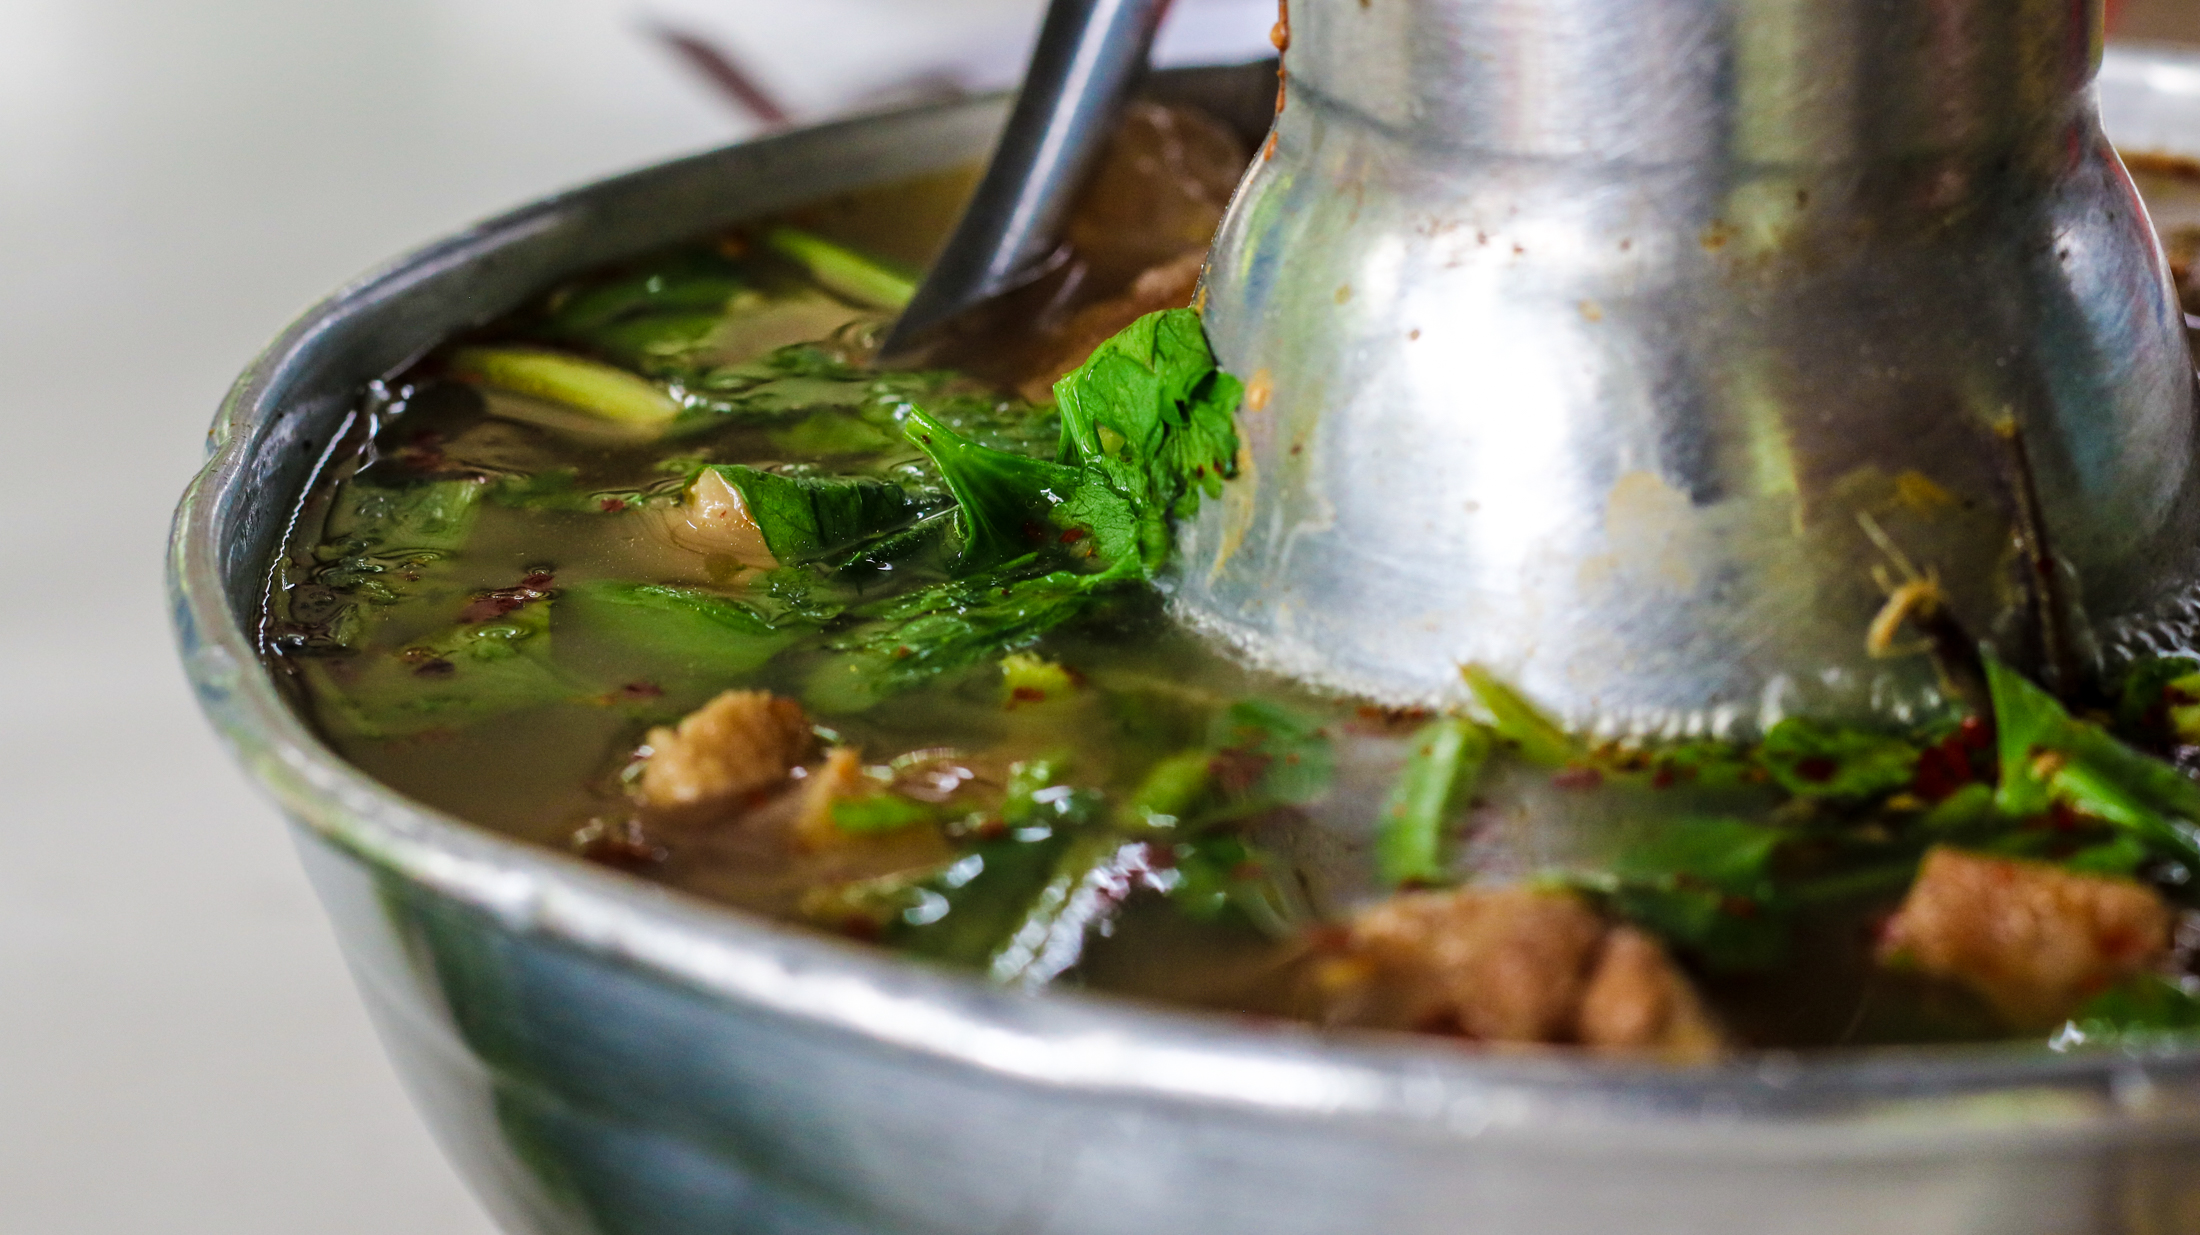 This oxtail soup is full of herbs, like lemongrass, and culantro, as well as huge chunks of the oxtail fatty meat